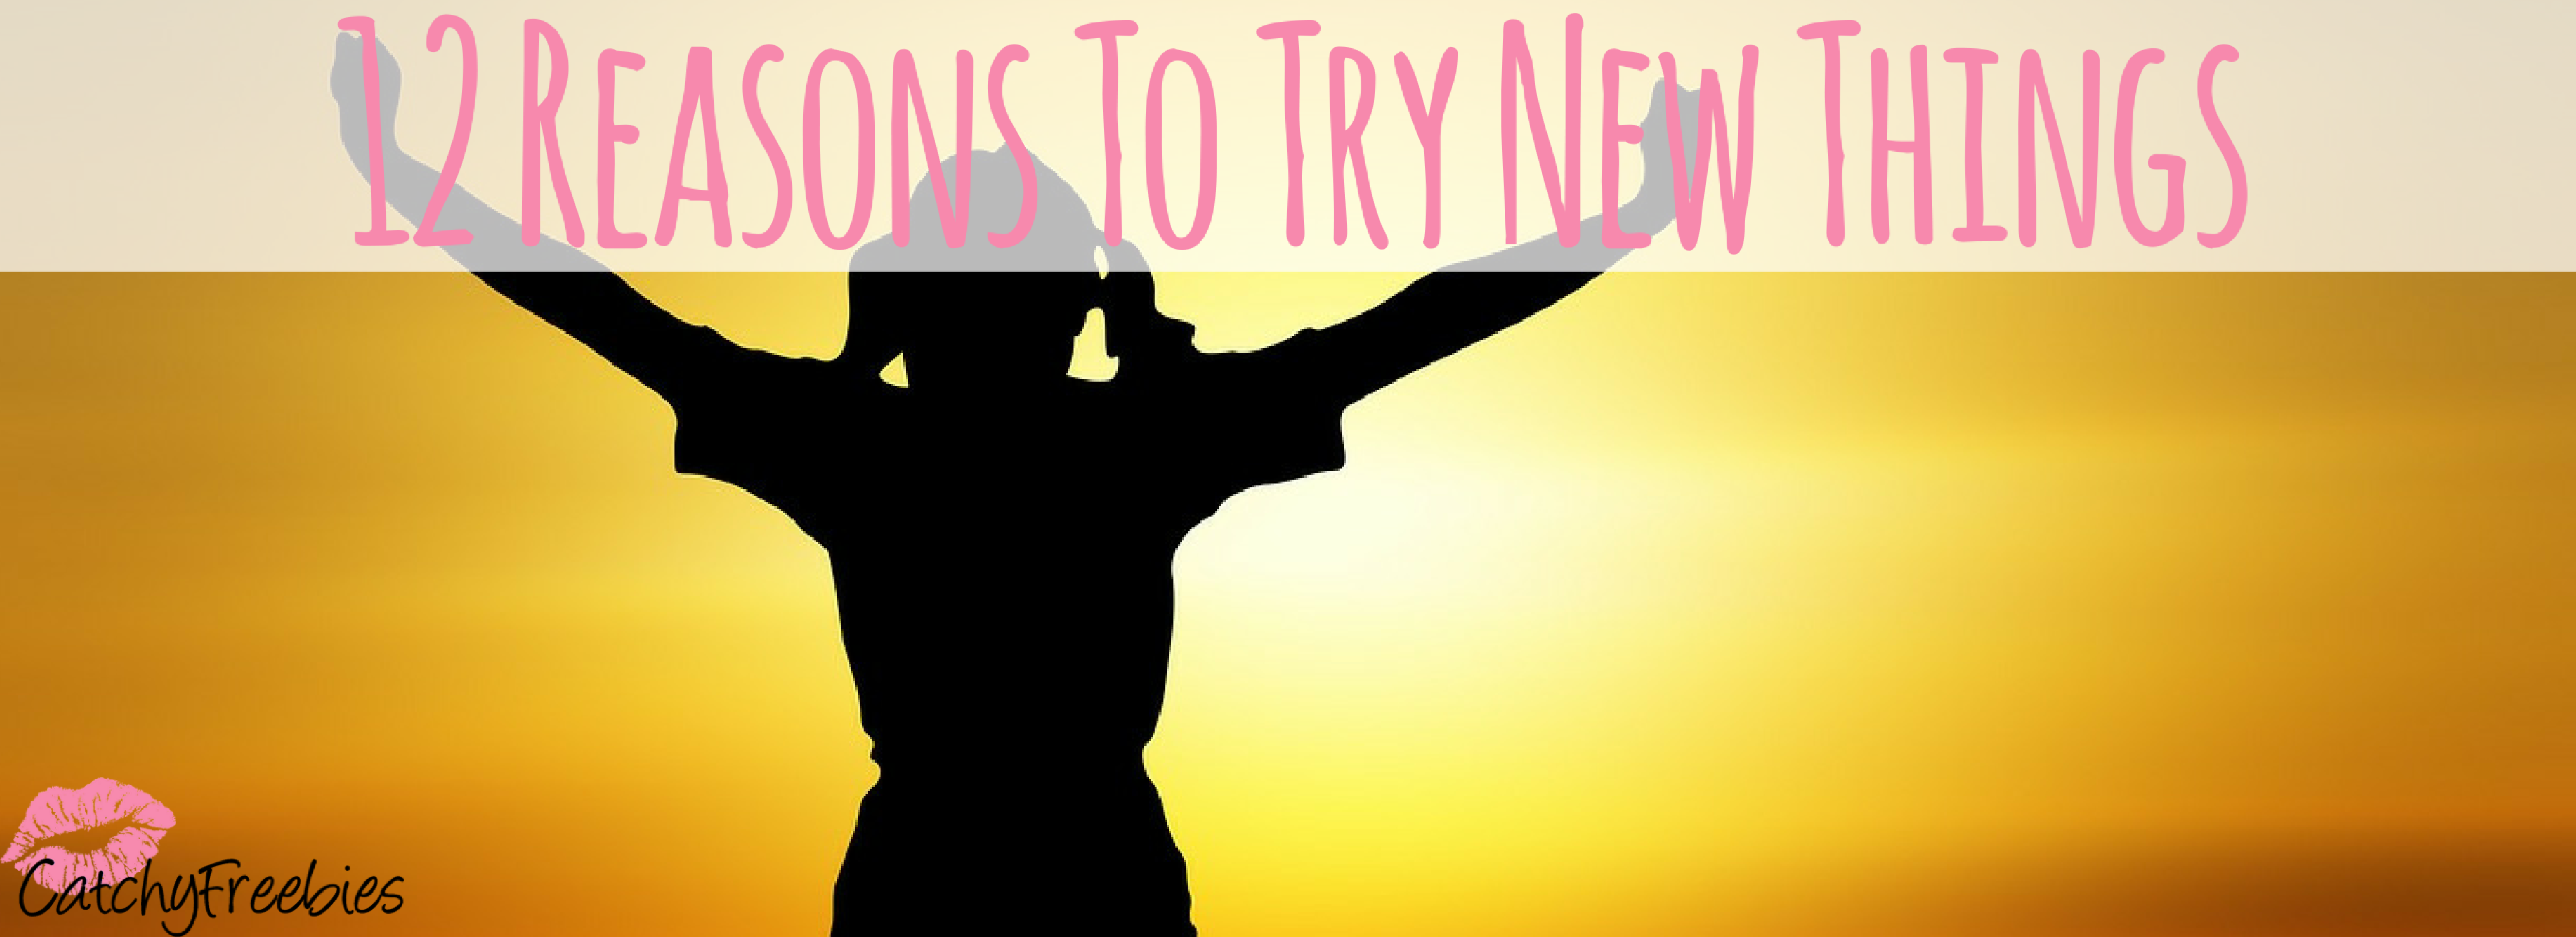 12 Reasons To Try New Things